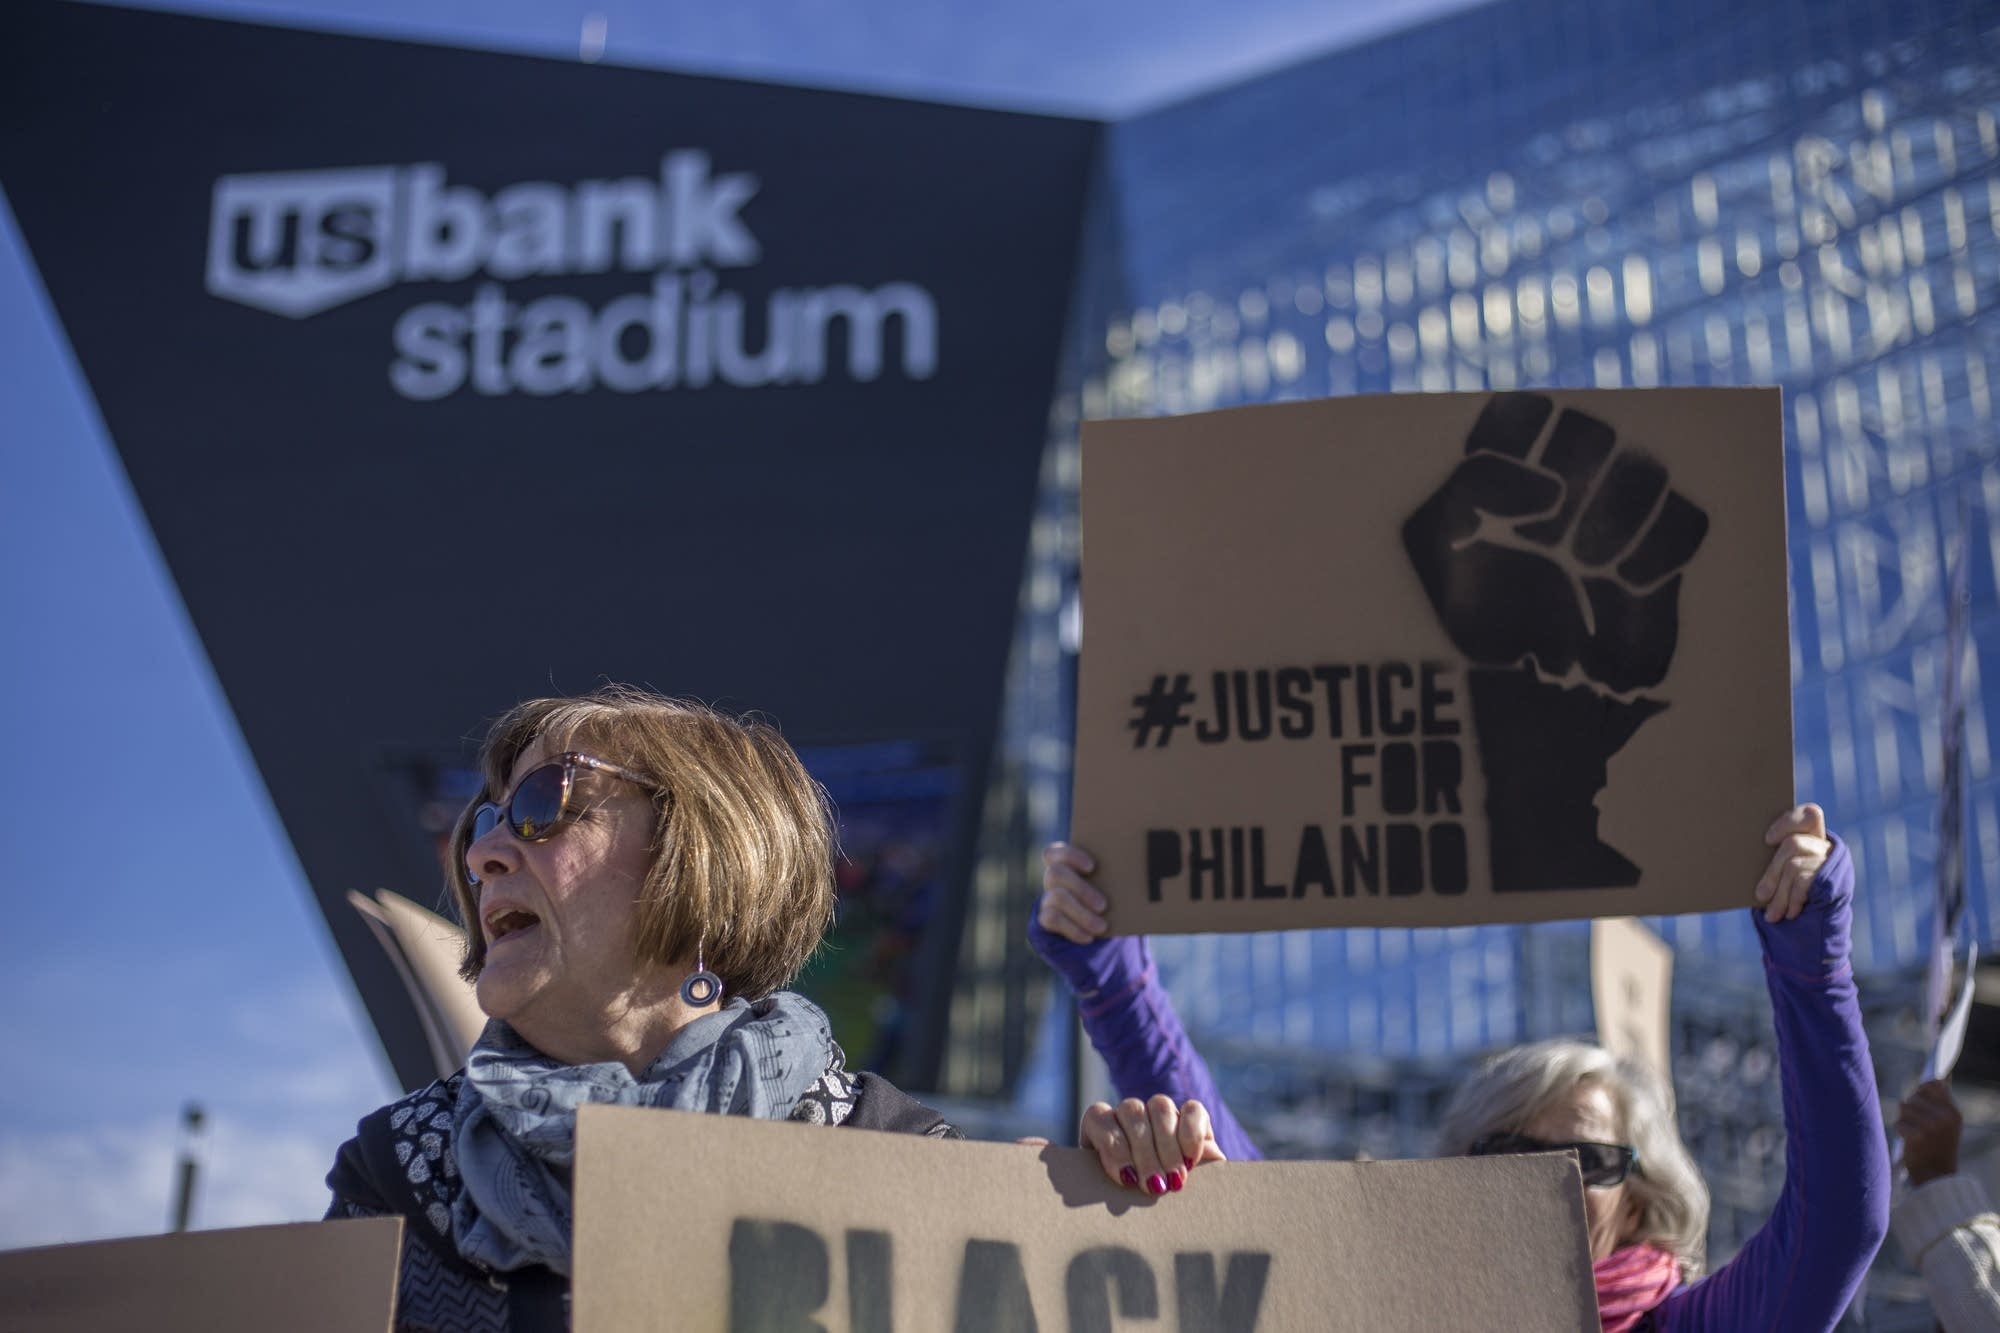 Sandi Sherman protests with Black Lives Matter outside US Bank Stadium.